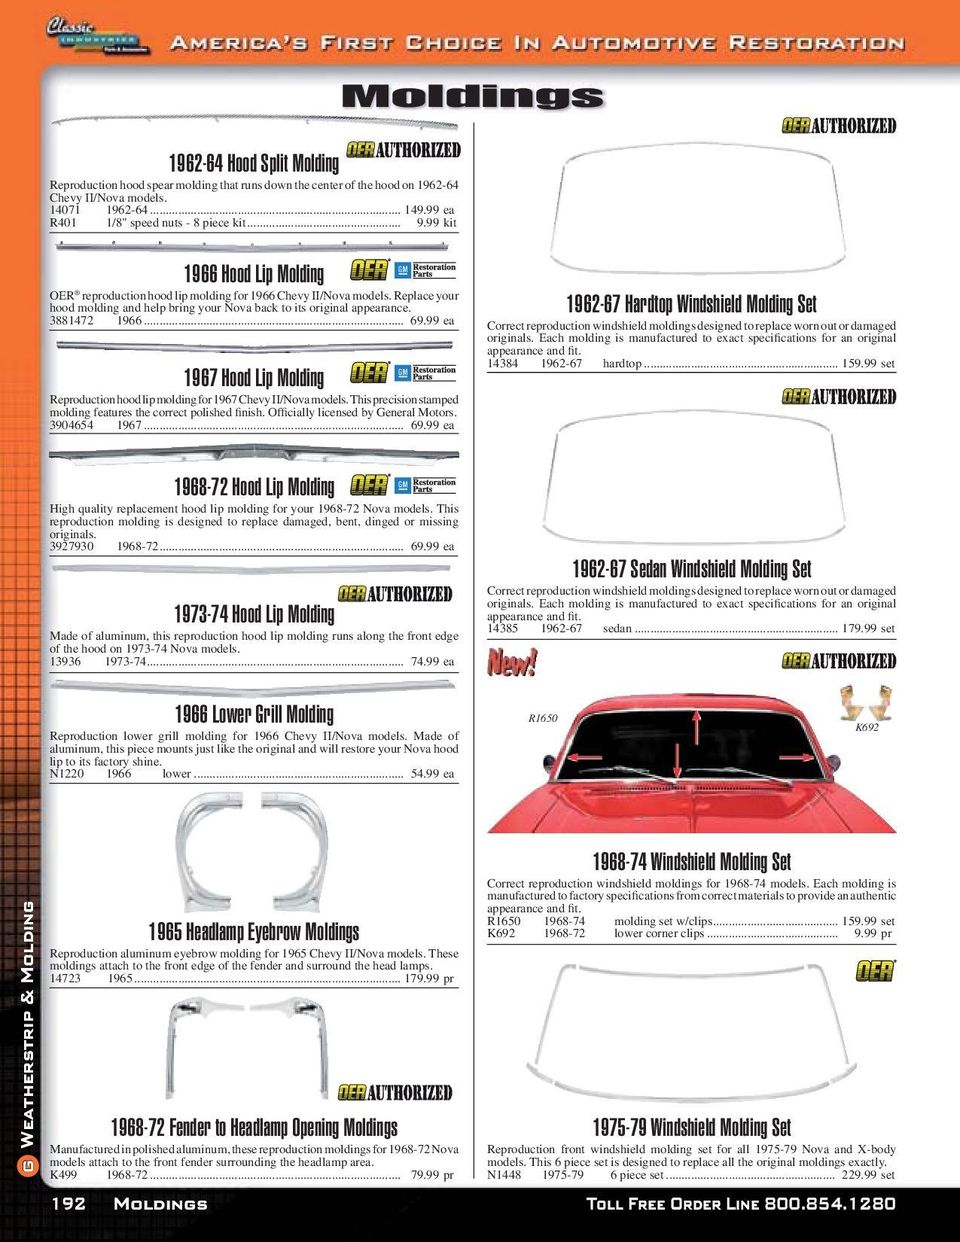 hight resolution of 69 99 ea 1967 hood lip molding reproduction hood lip molding for 1967 chevy ii